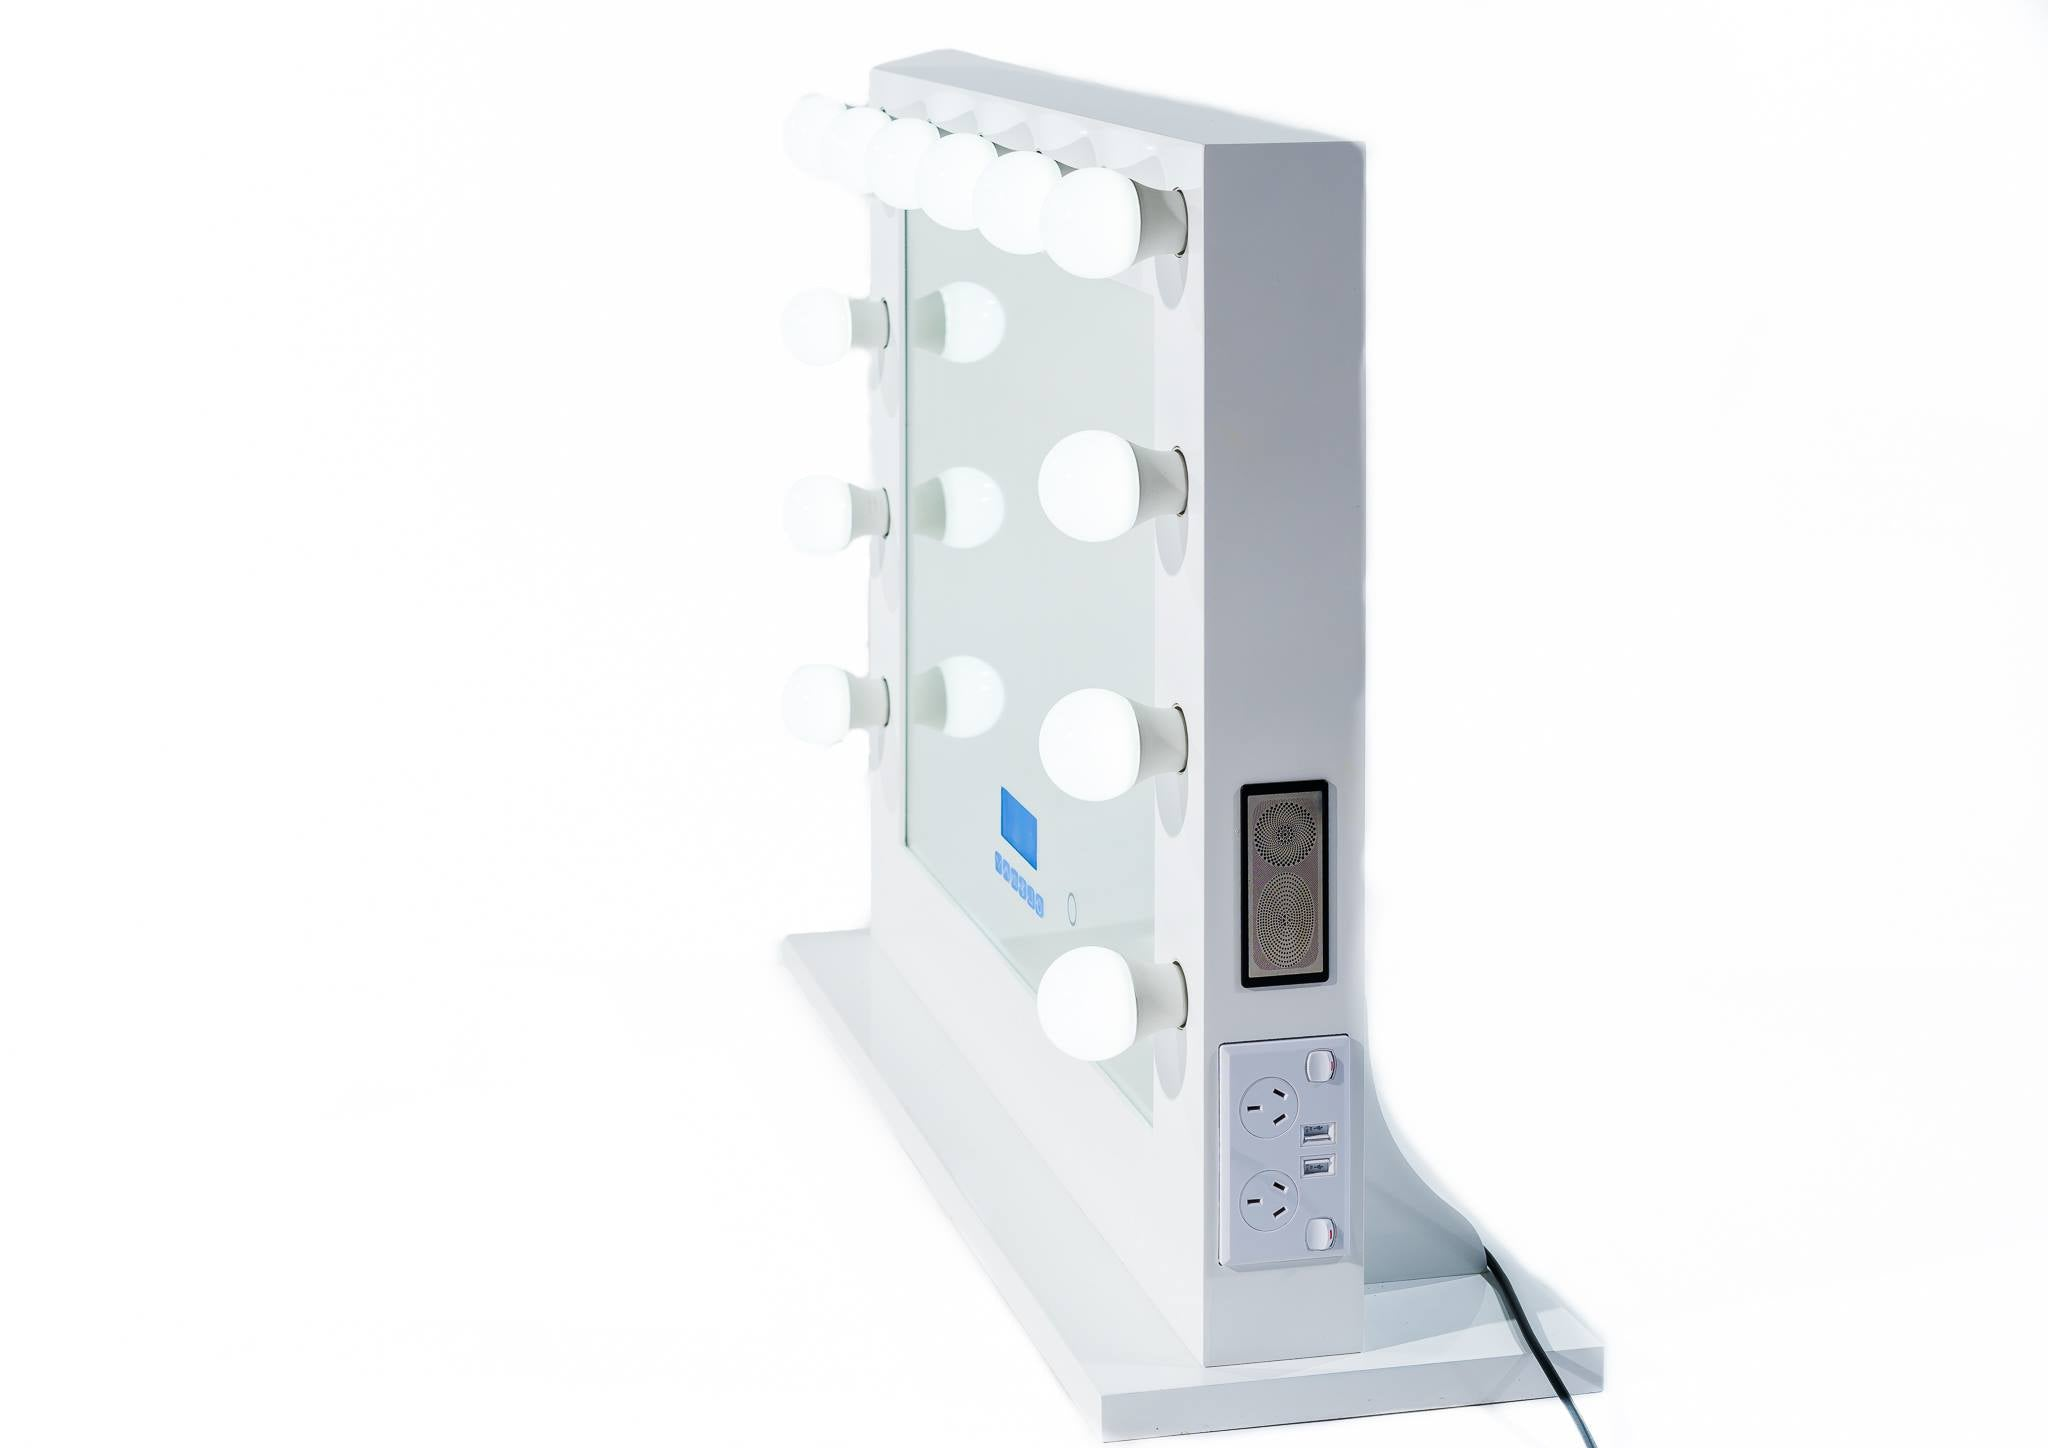 Hollywood Mirror Extra Large WHITE Bluetooth Speakers,Sensor Dimmer,USB,Power Point-SOLD OUT